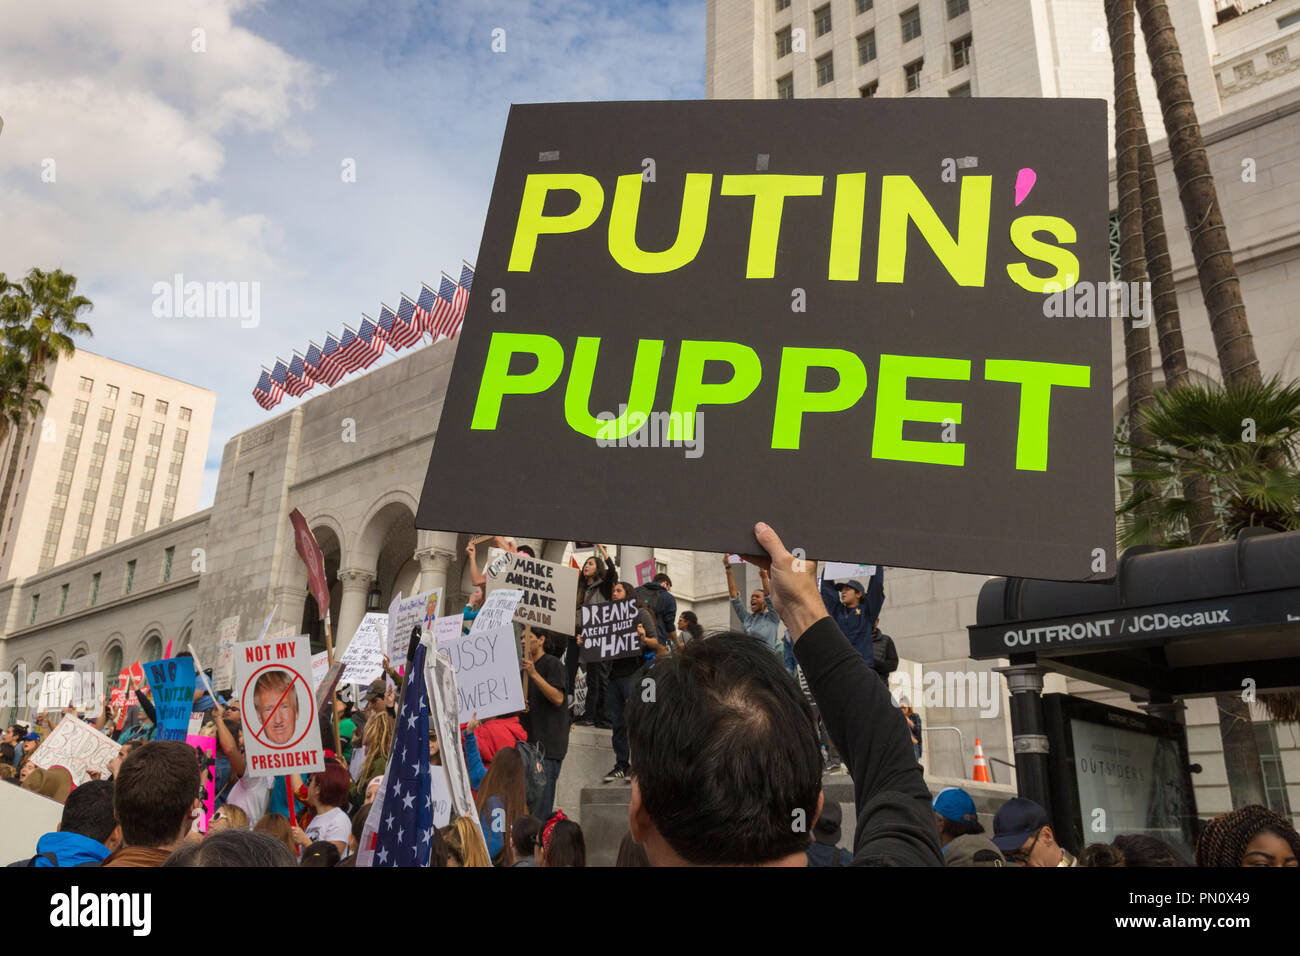 Sign reading 'Putin's Puppet' by anti-Trump protester at Los Angeles City Hall, 2017. - Stock Image